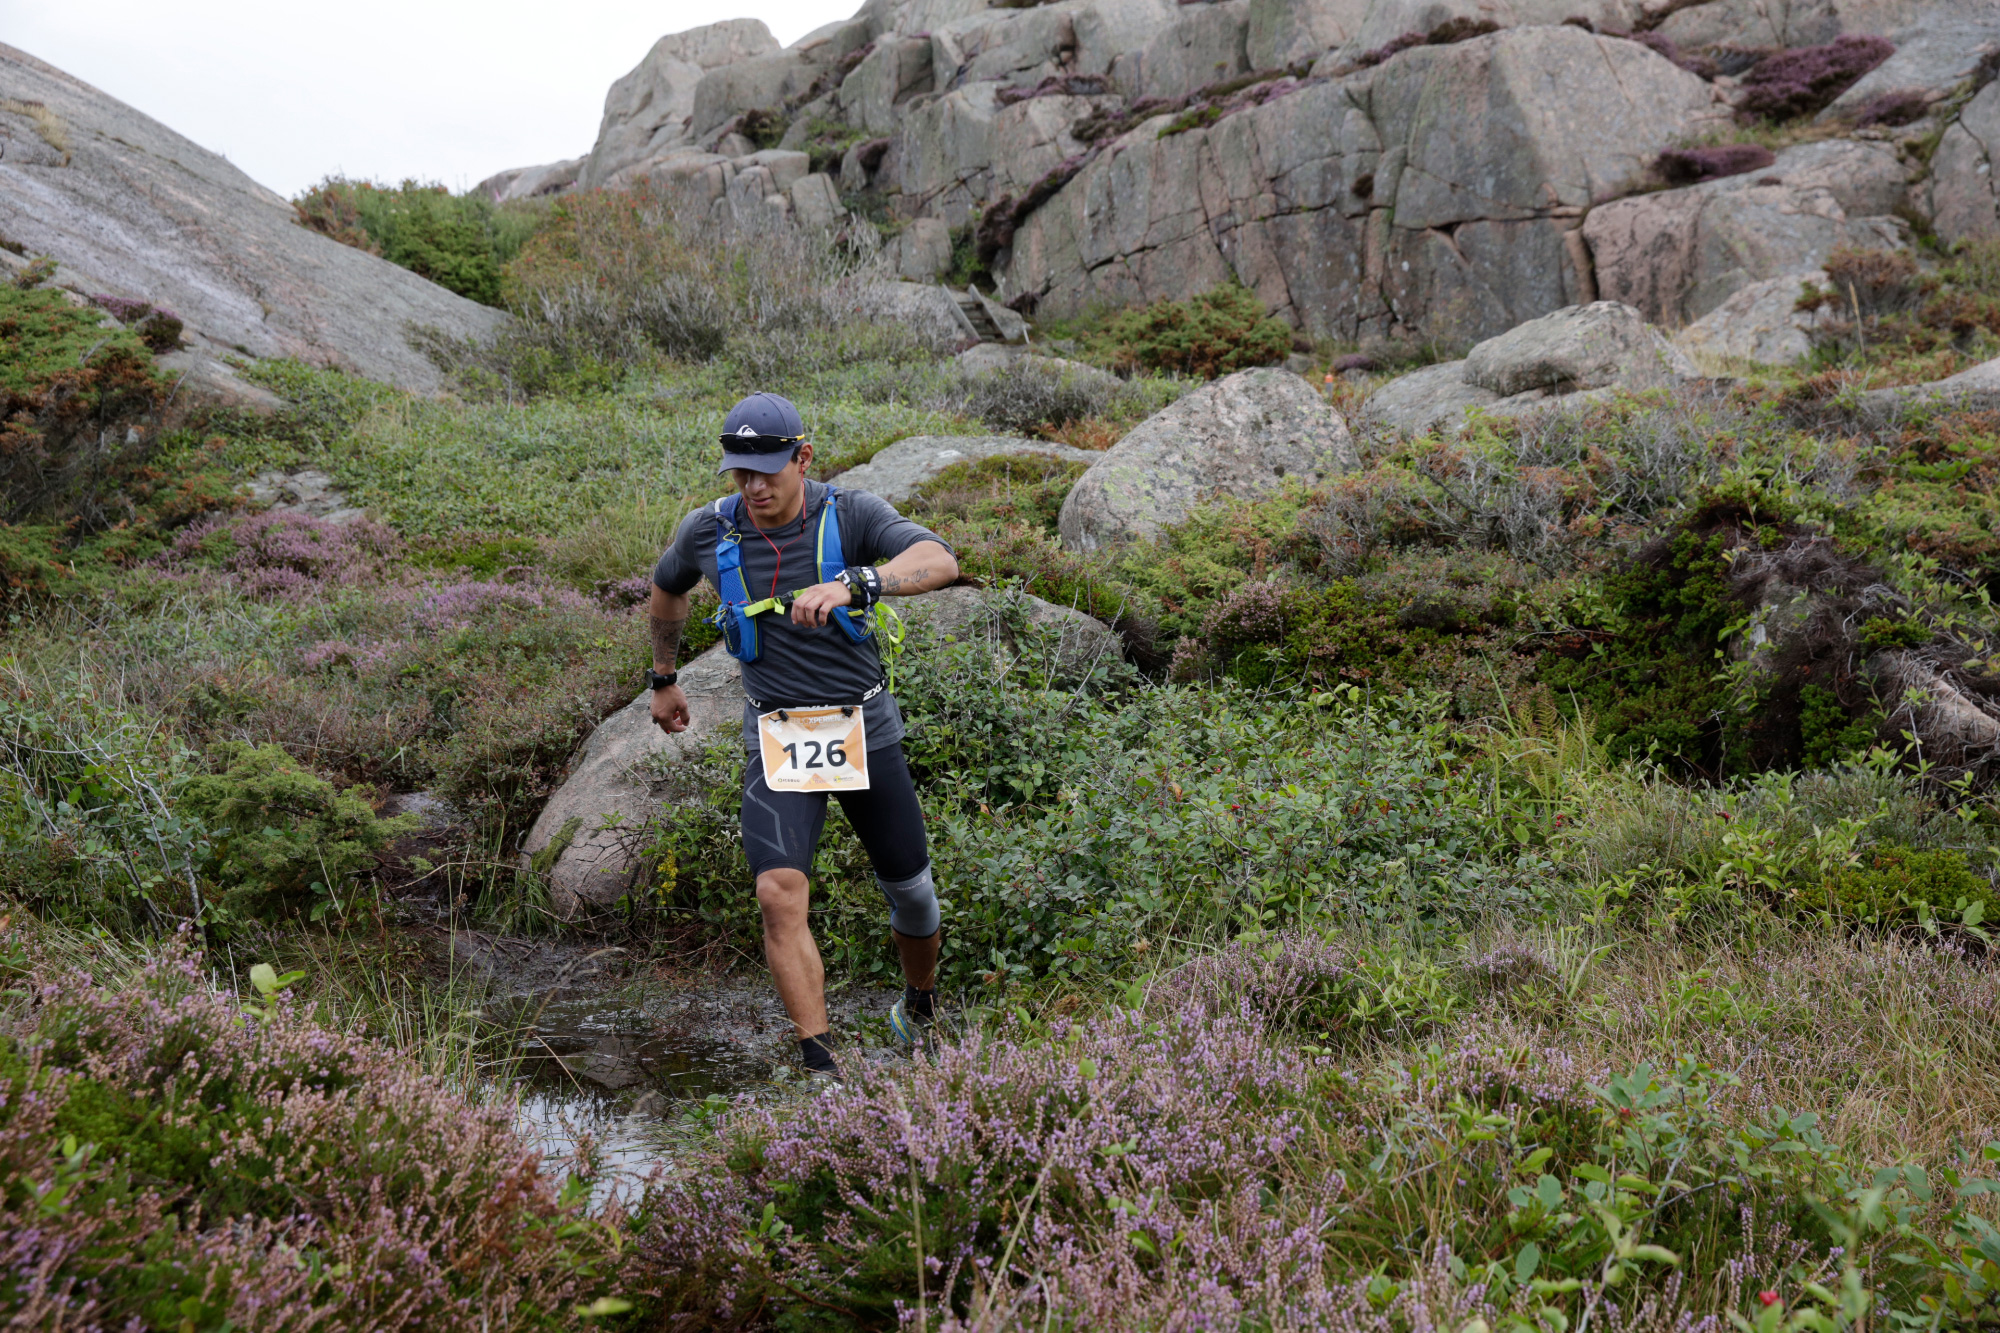 Man running through vegetation growing between rocks and boulders on the Icebug Xperience marathon